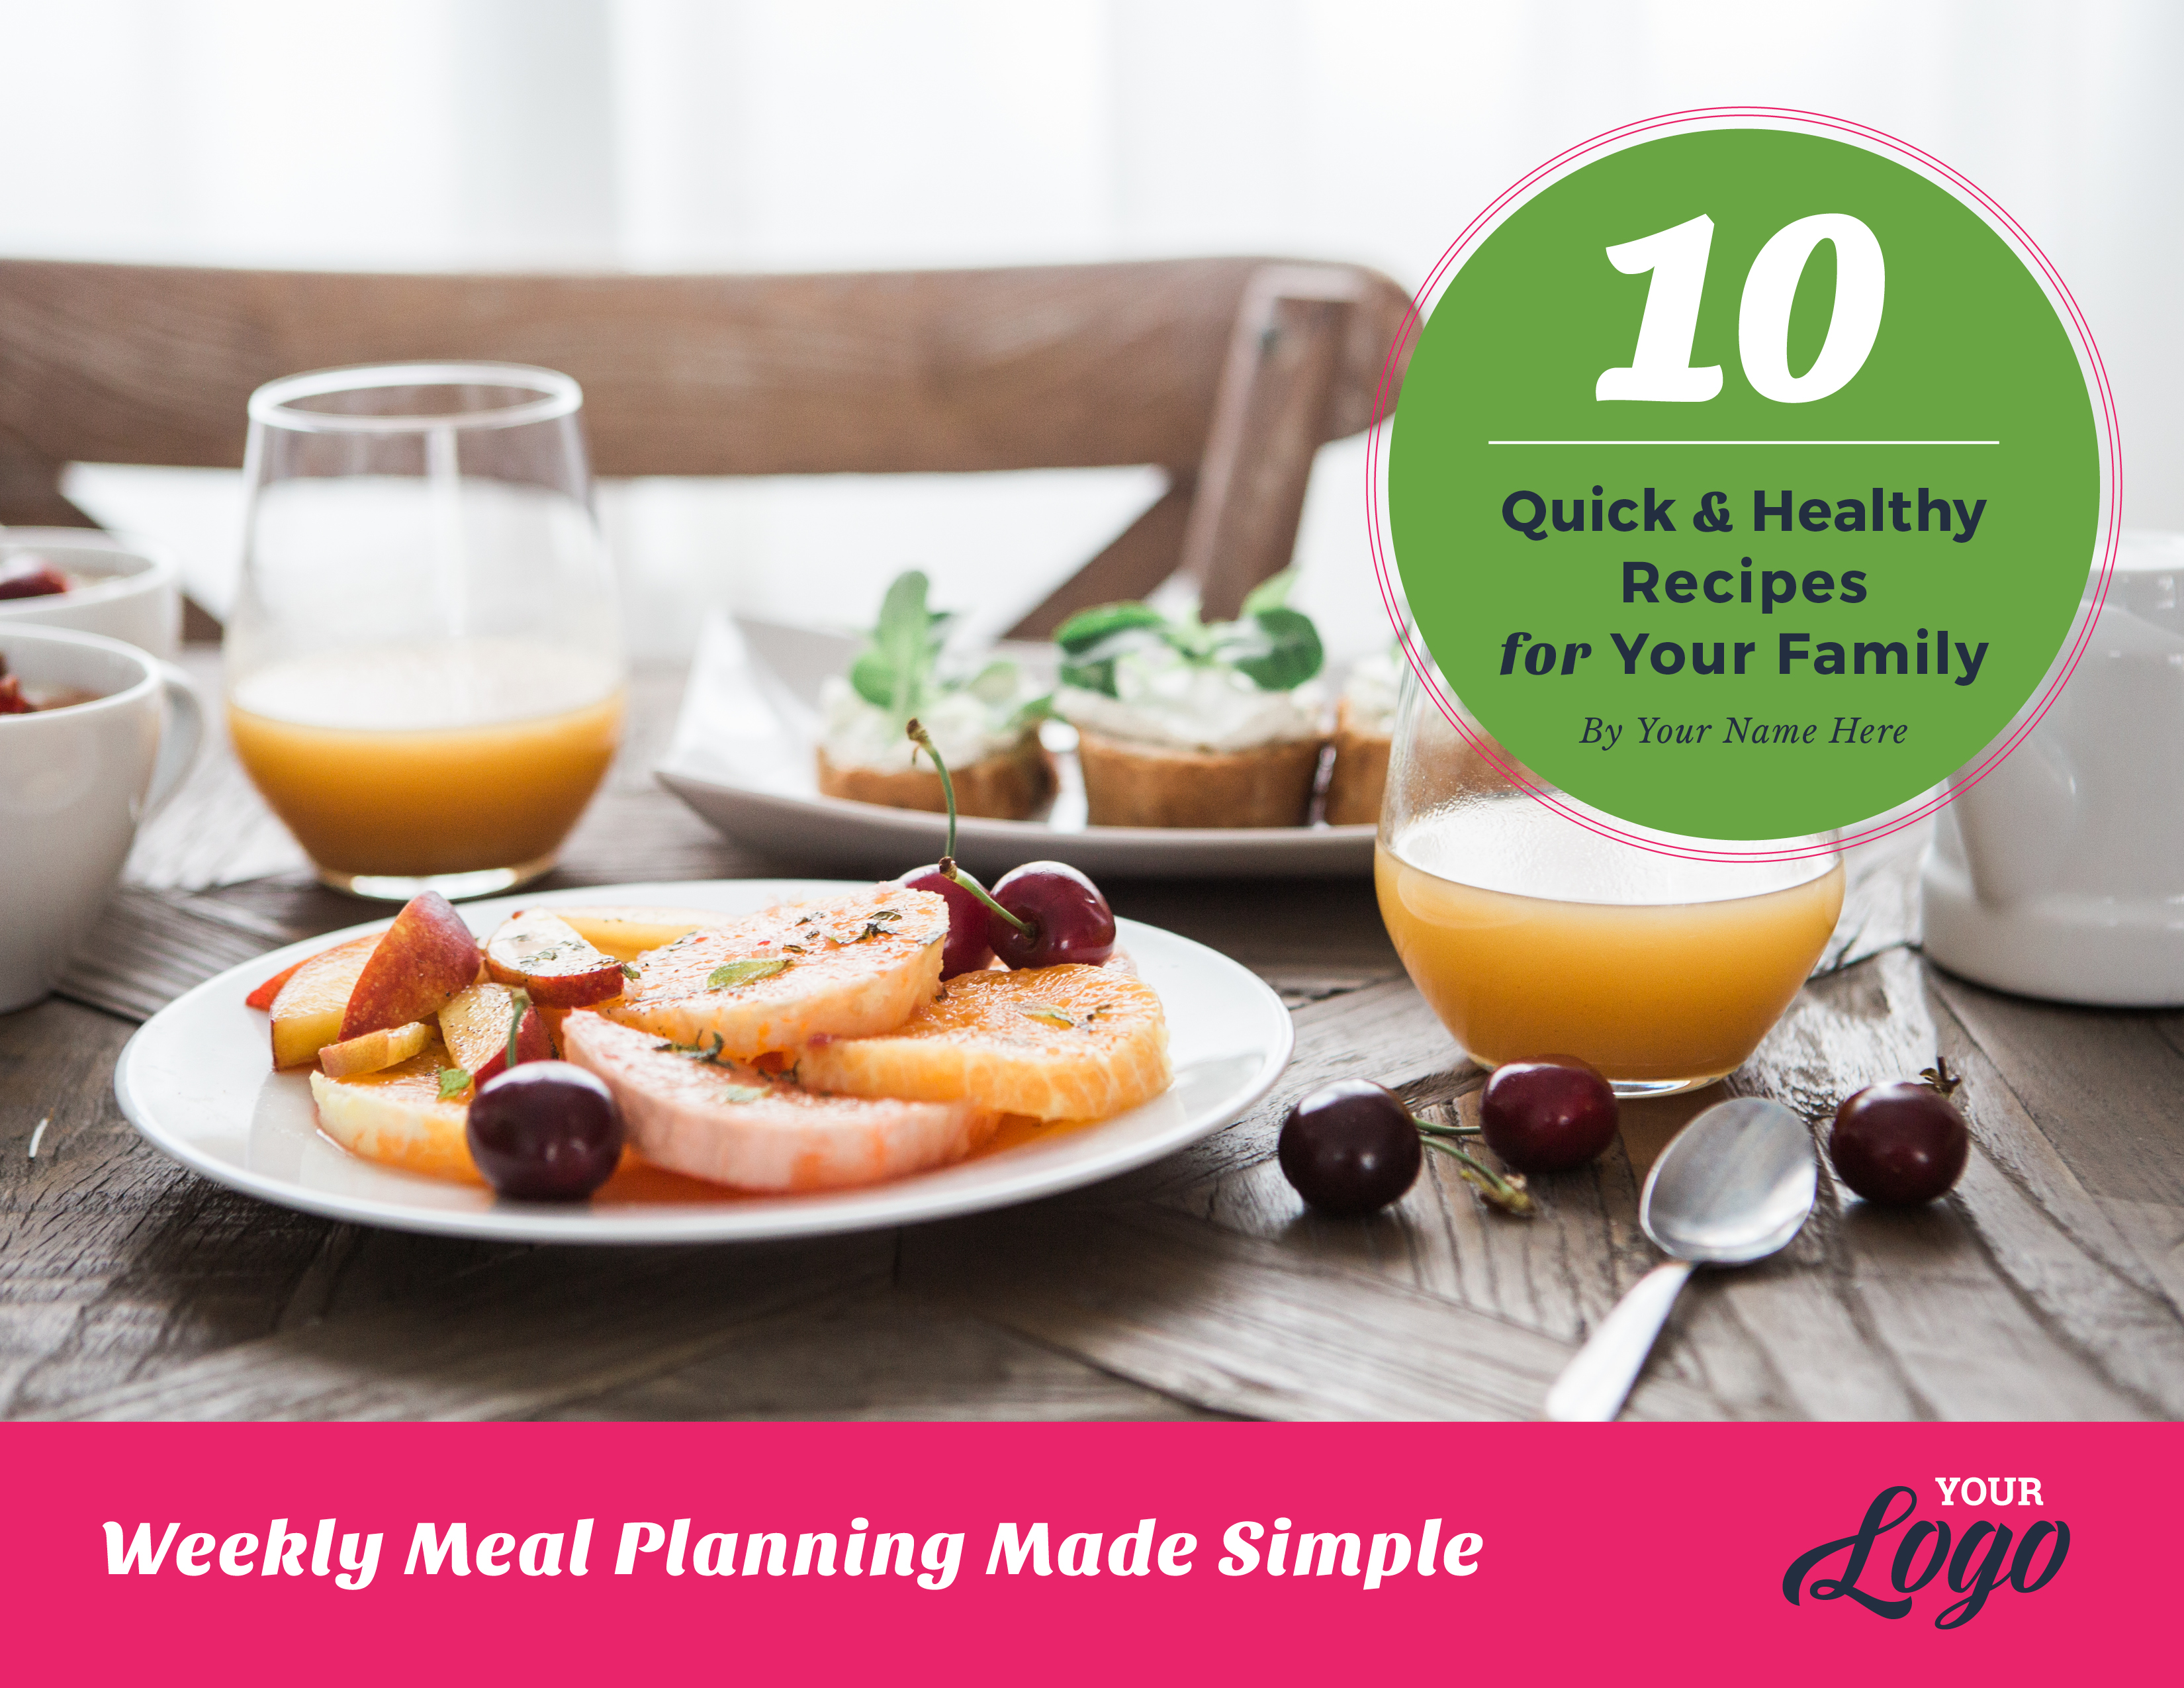 Instant download template for a freebie meal planning and recipe instant download template for a freebie meal planning and recipe card version 2 forumfinder Choice Image